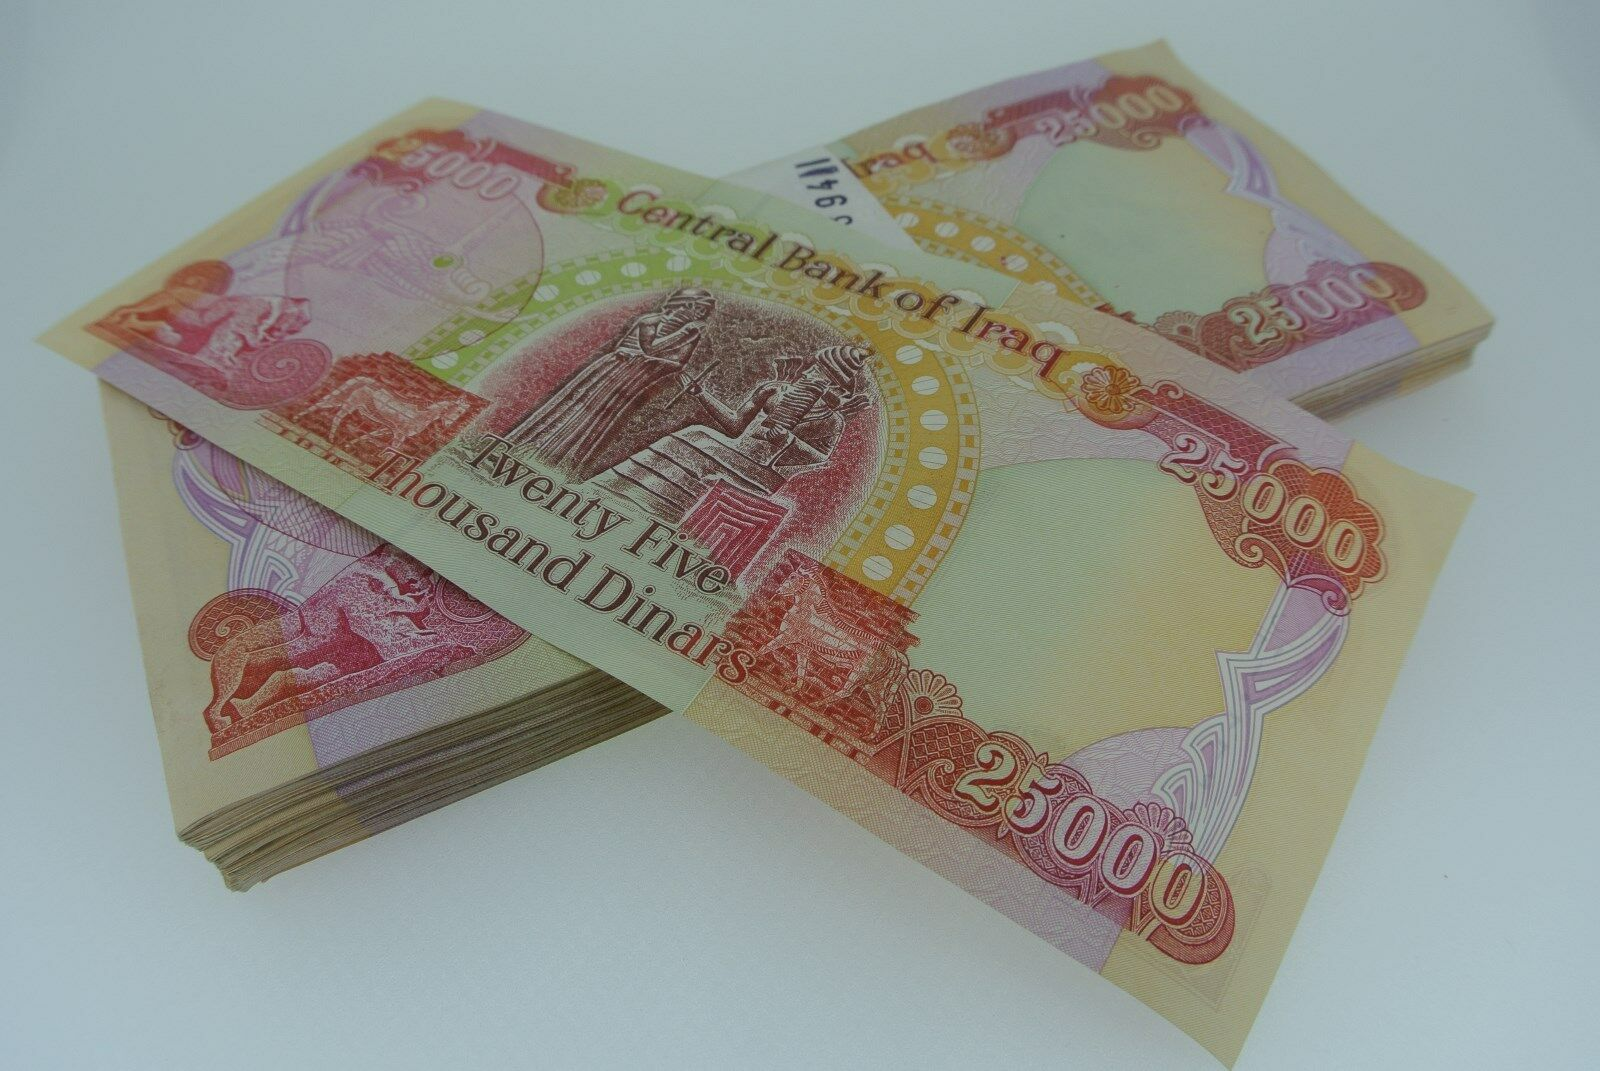 Iraqi Dinar Iqd Official Iraq Currency One 25 000 1 Of 8only 5 Available